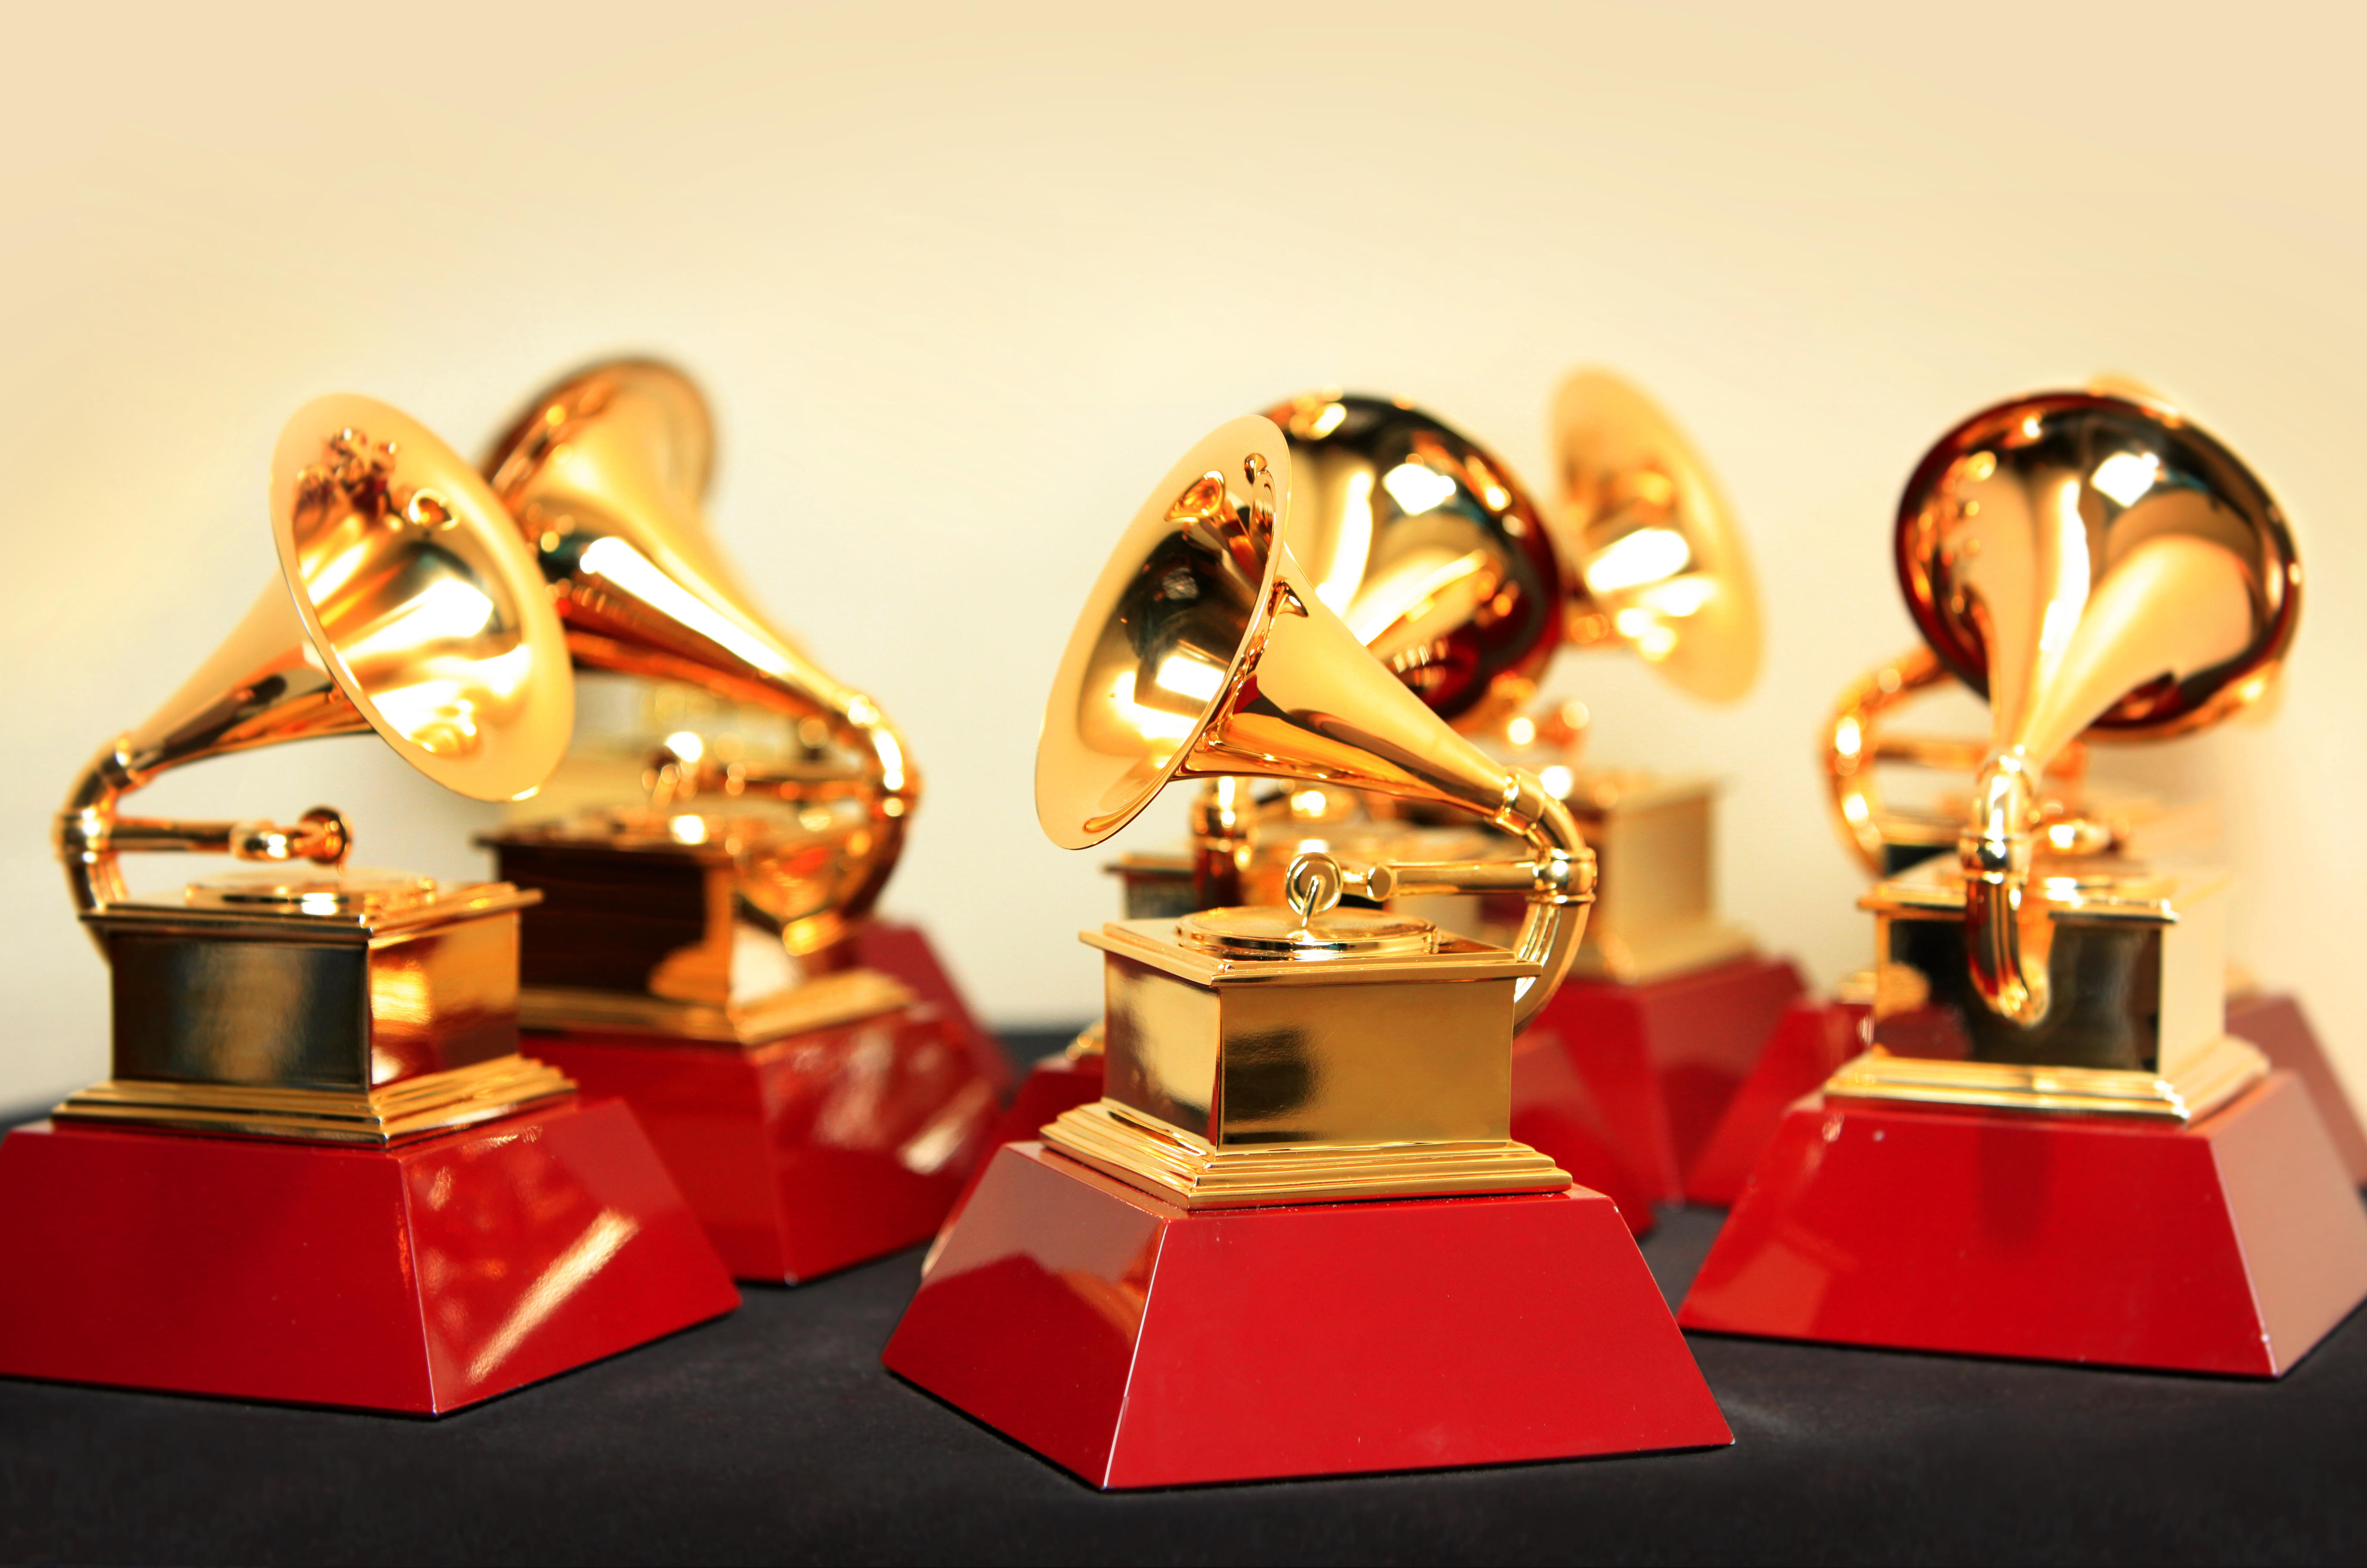 the grammys 2019 full list of 2019 grammy awards nominees as announced live on cbs this morning cbs news https www cbsnews com news the grammys 2019 nominations full list of nominees today live stream